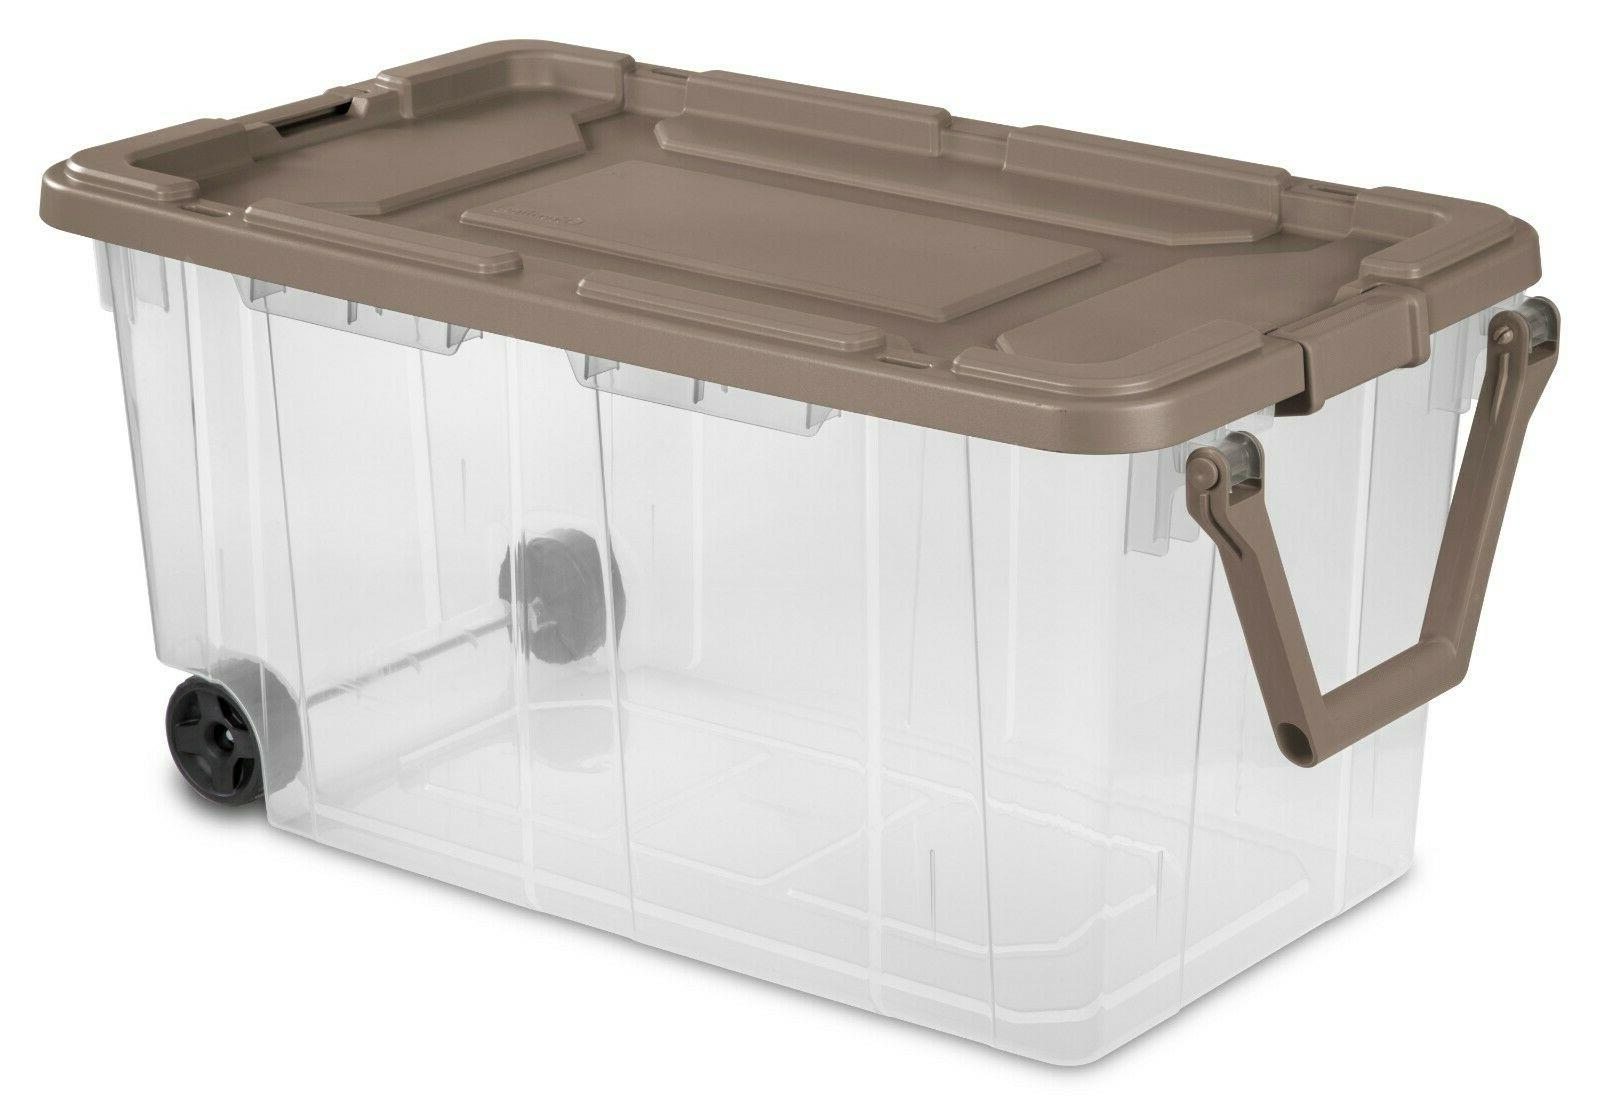 Tote Storage Box Set 2 Wheeled Latch Large Containers 40 Gal